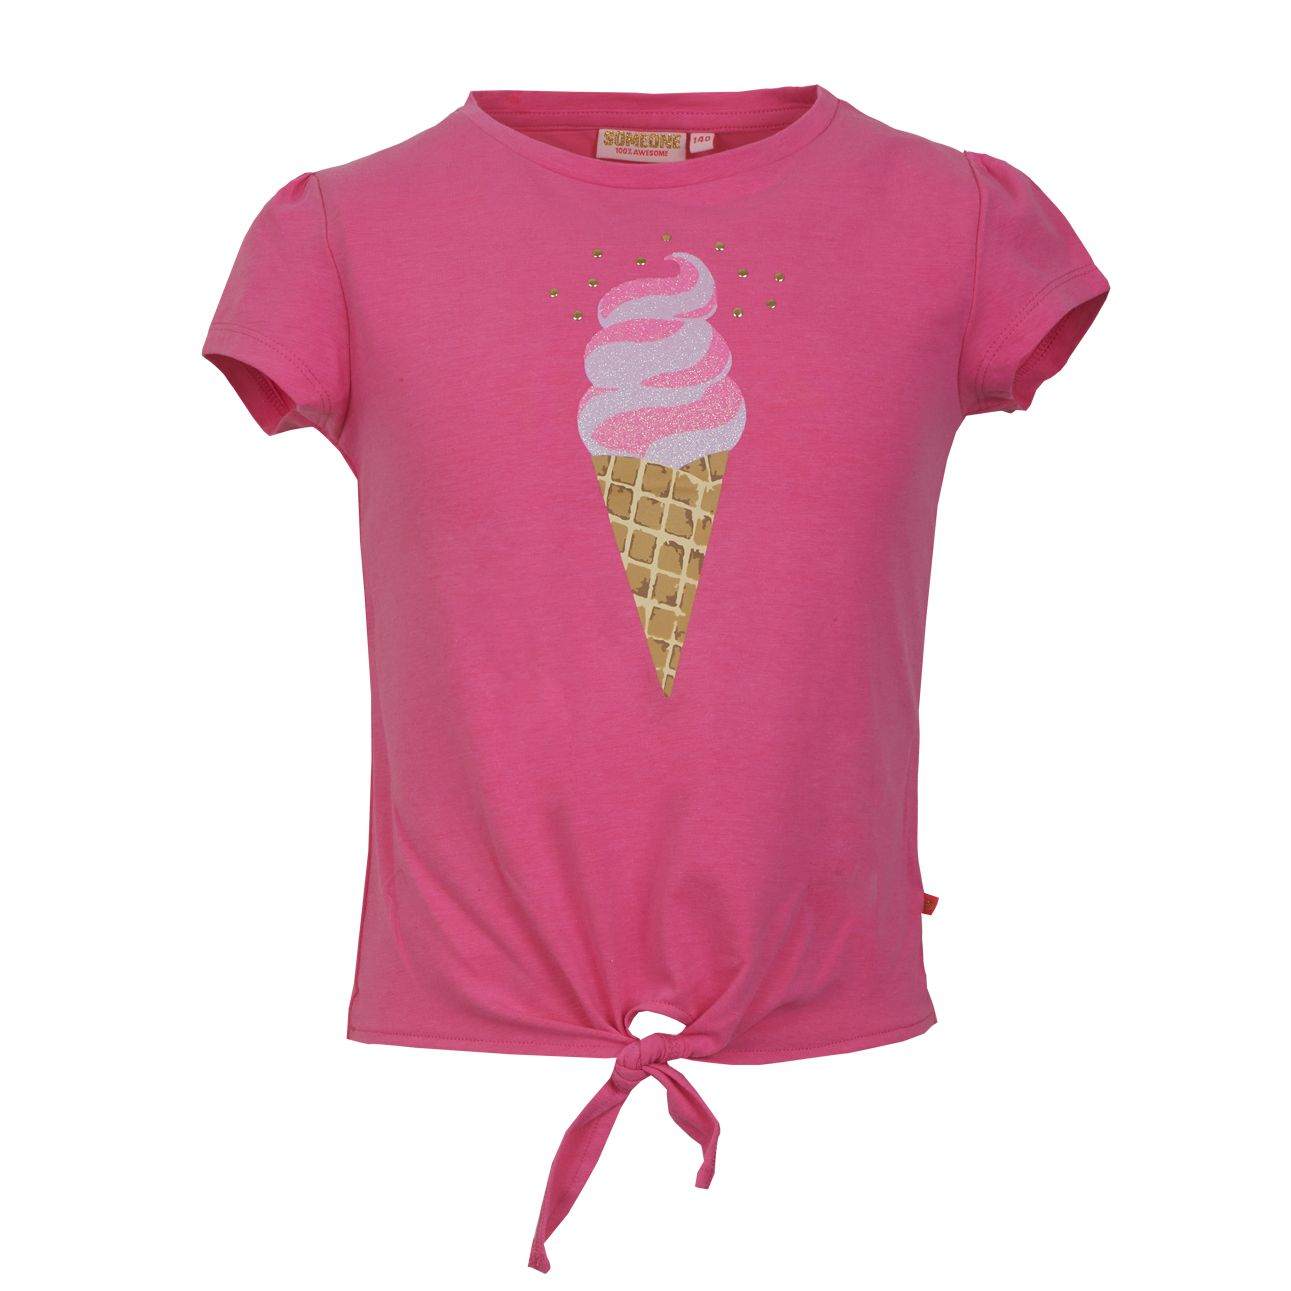 T-Shirt Eis 128 Pink SOMEONE 100% Awesome